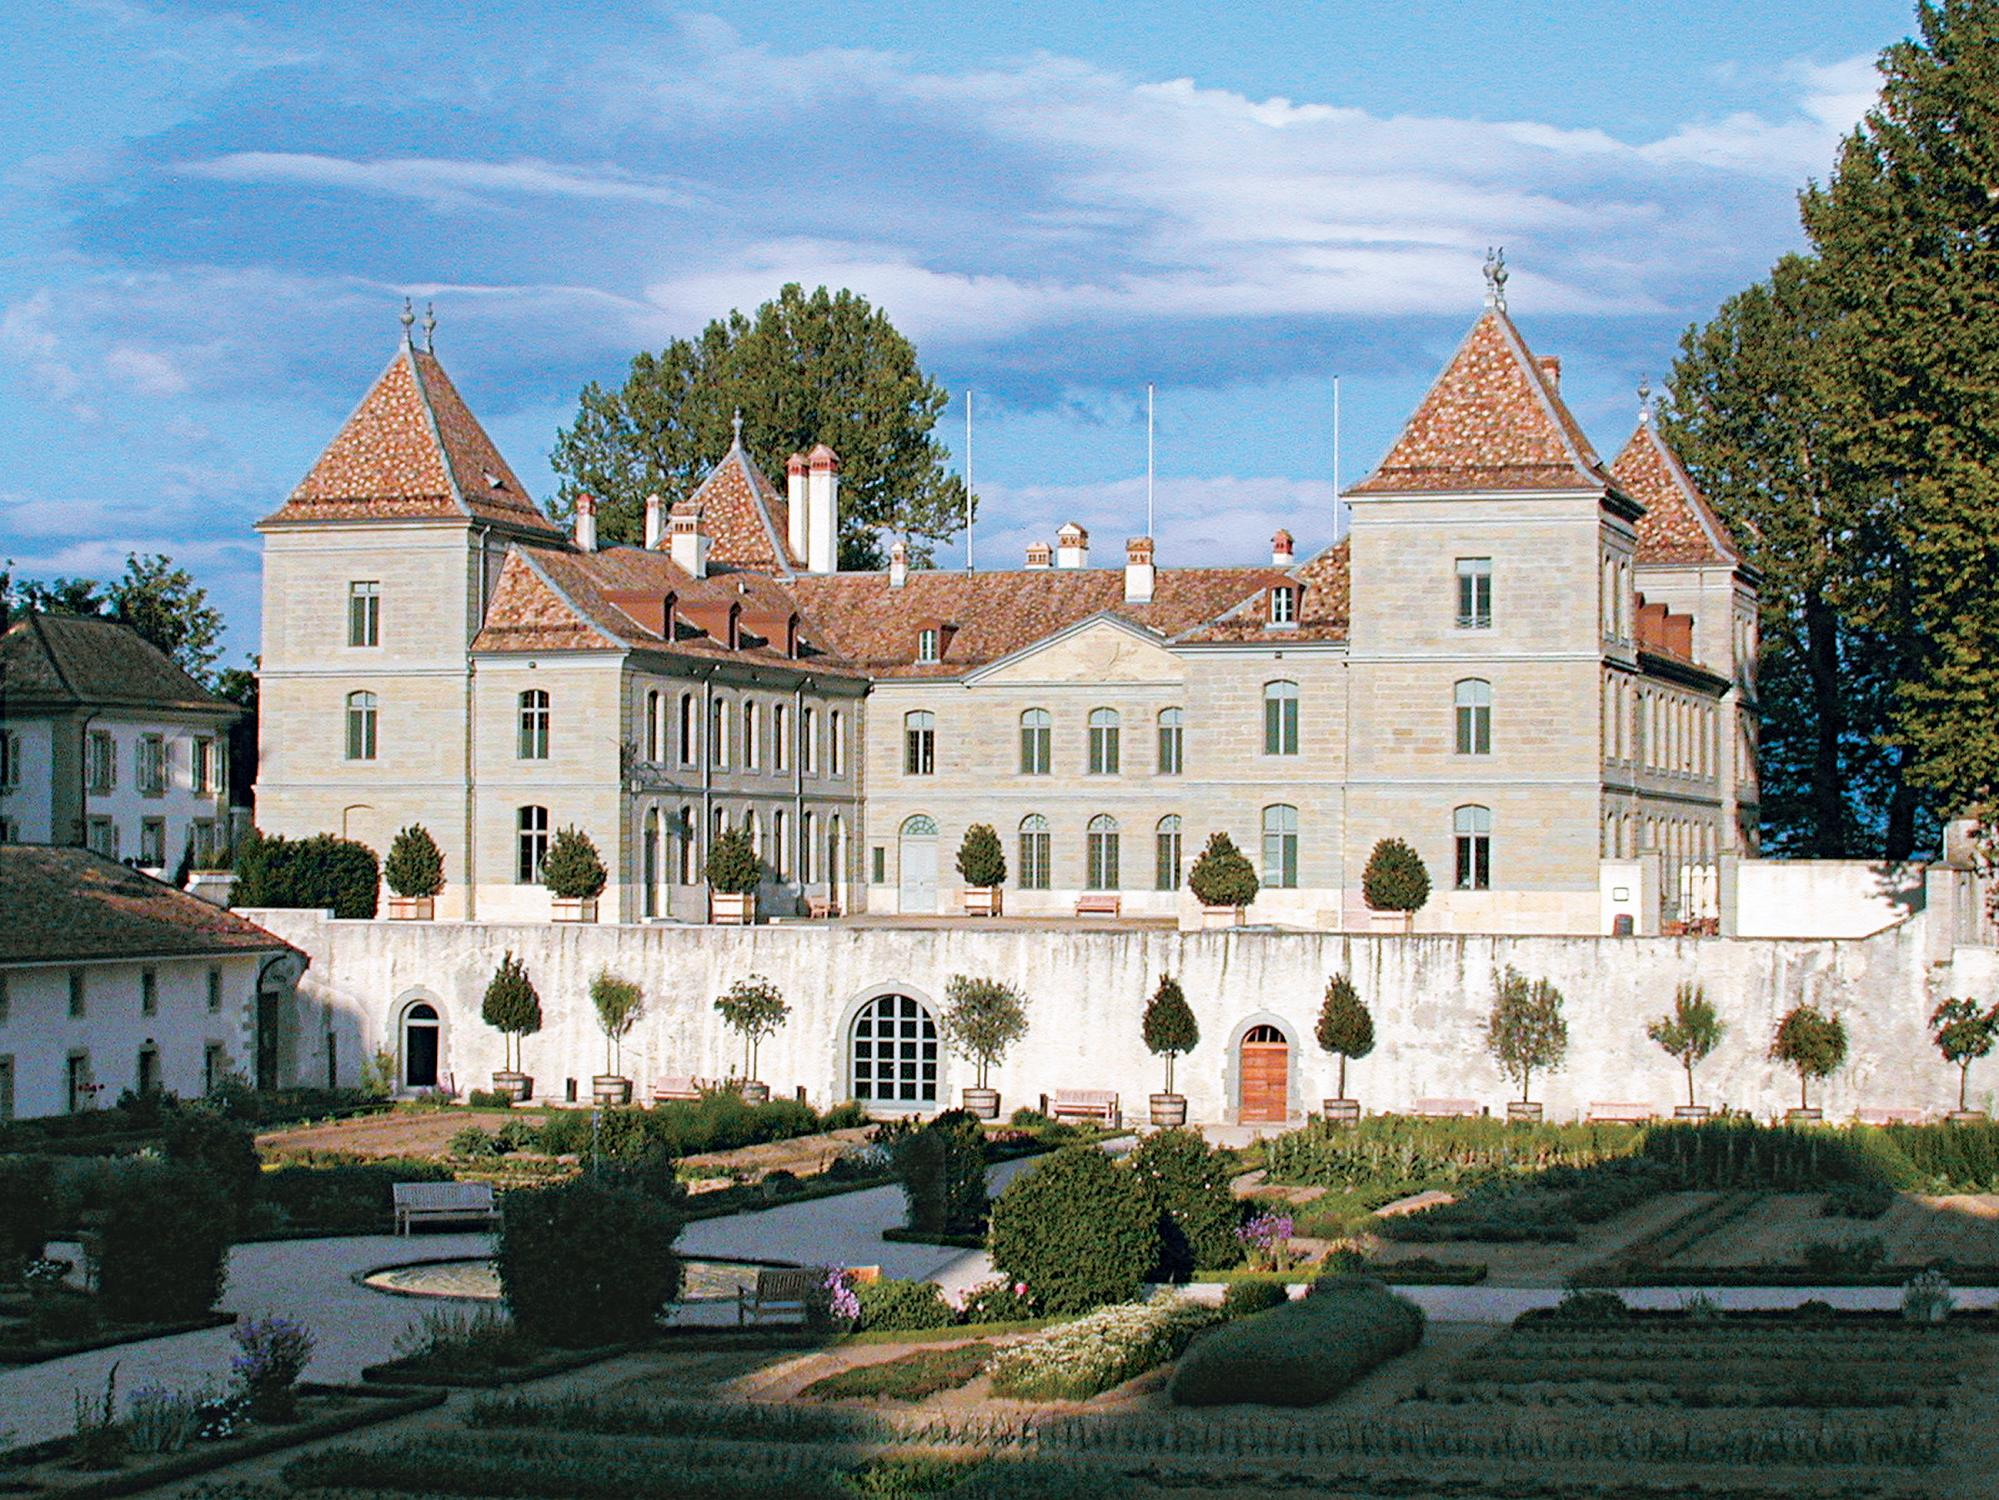 Noble conferences at the Château de Prangins